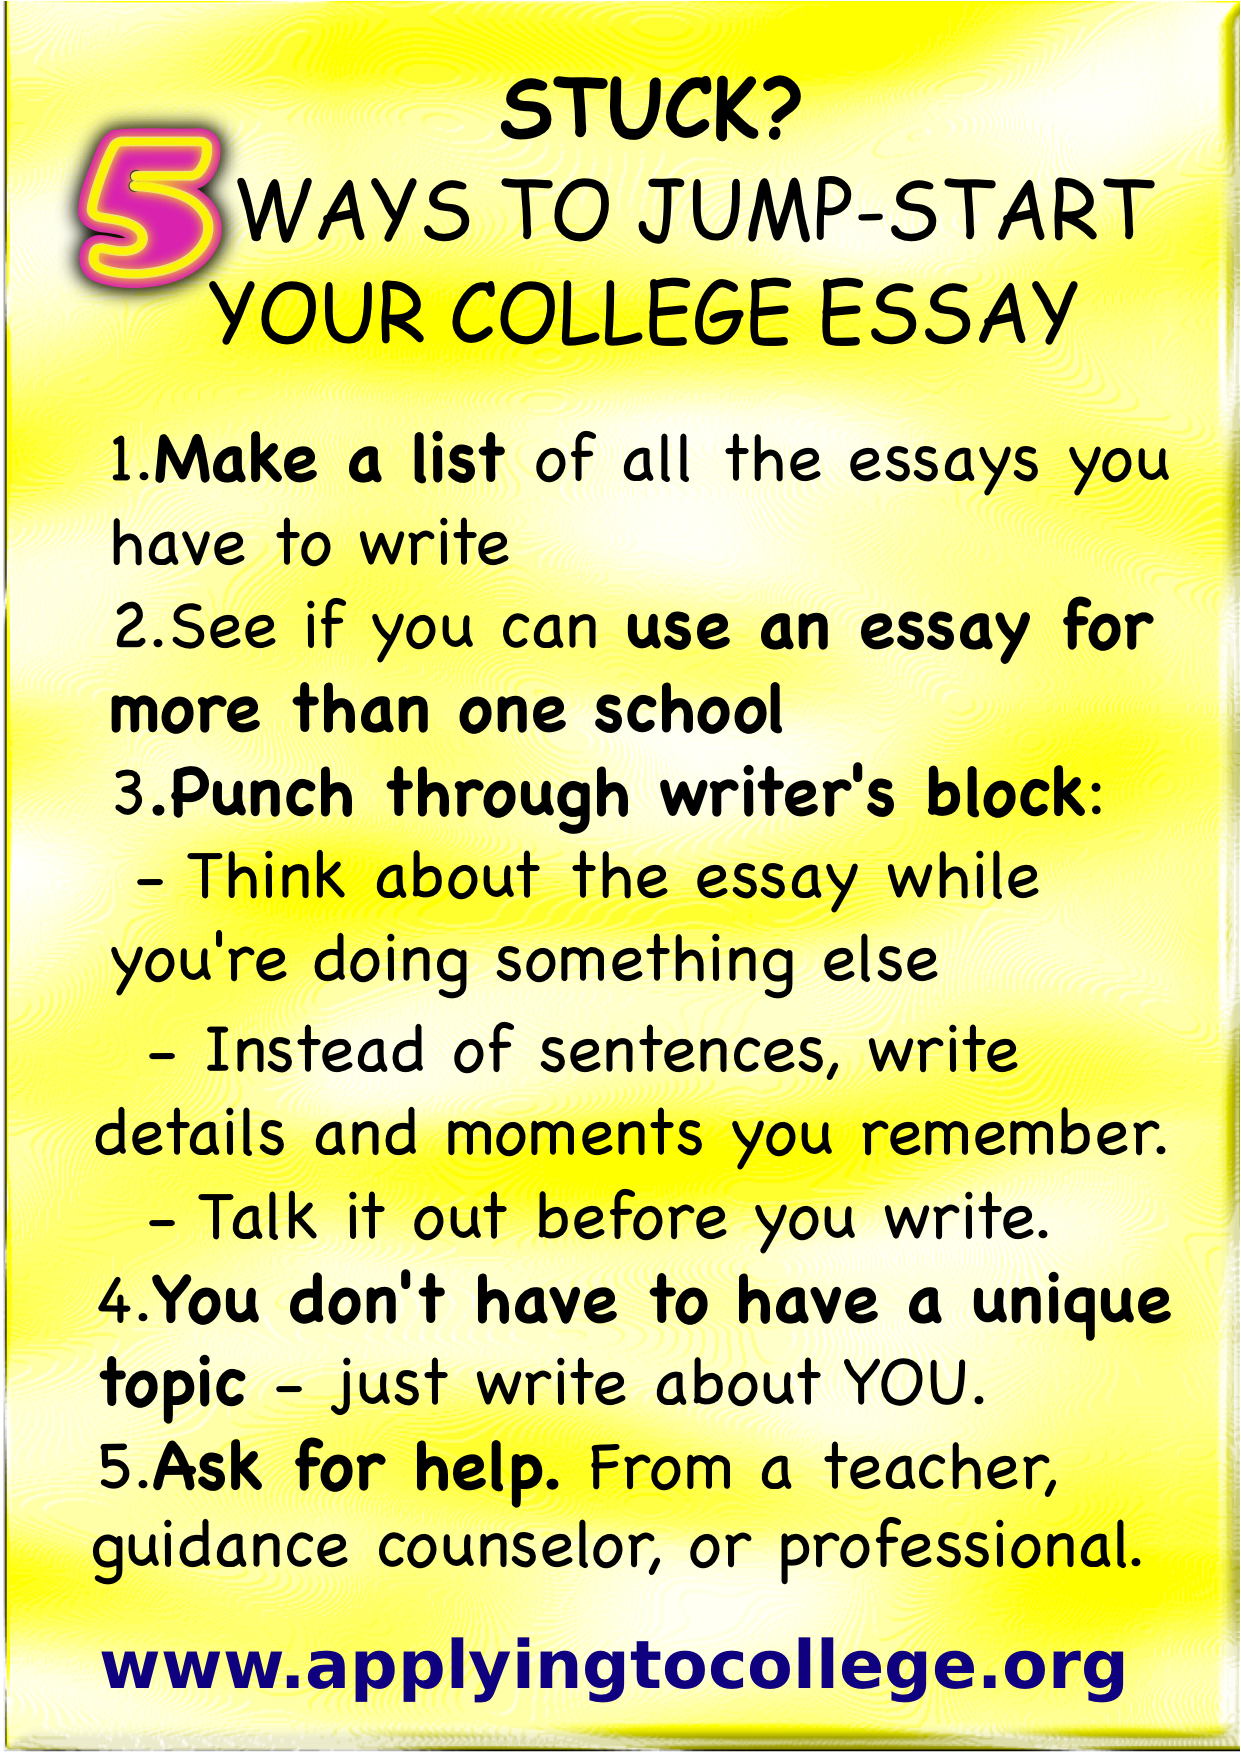 stuck 5 tips to jump start your college essay applying to college 5 ways to reduce college application essay stress how